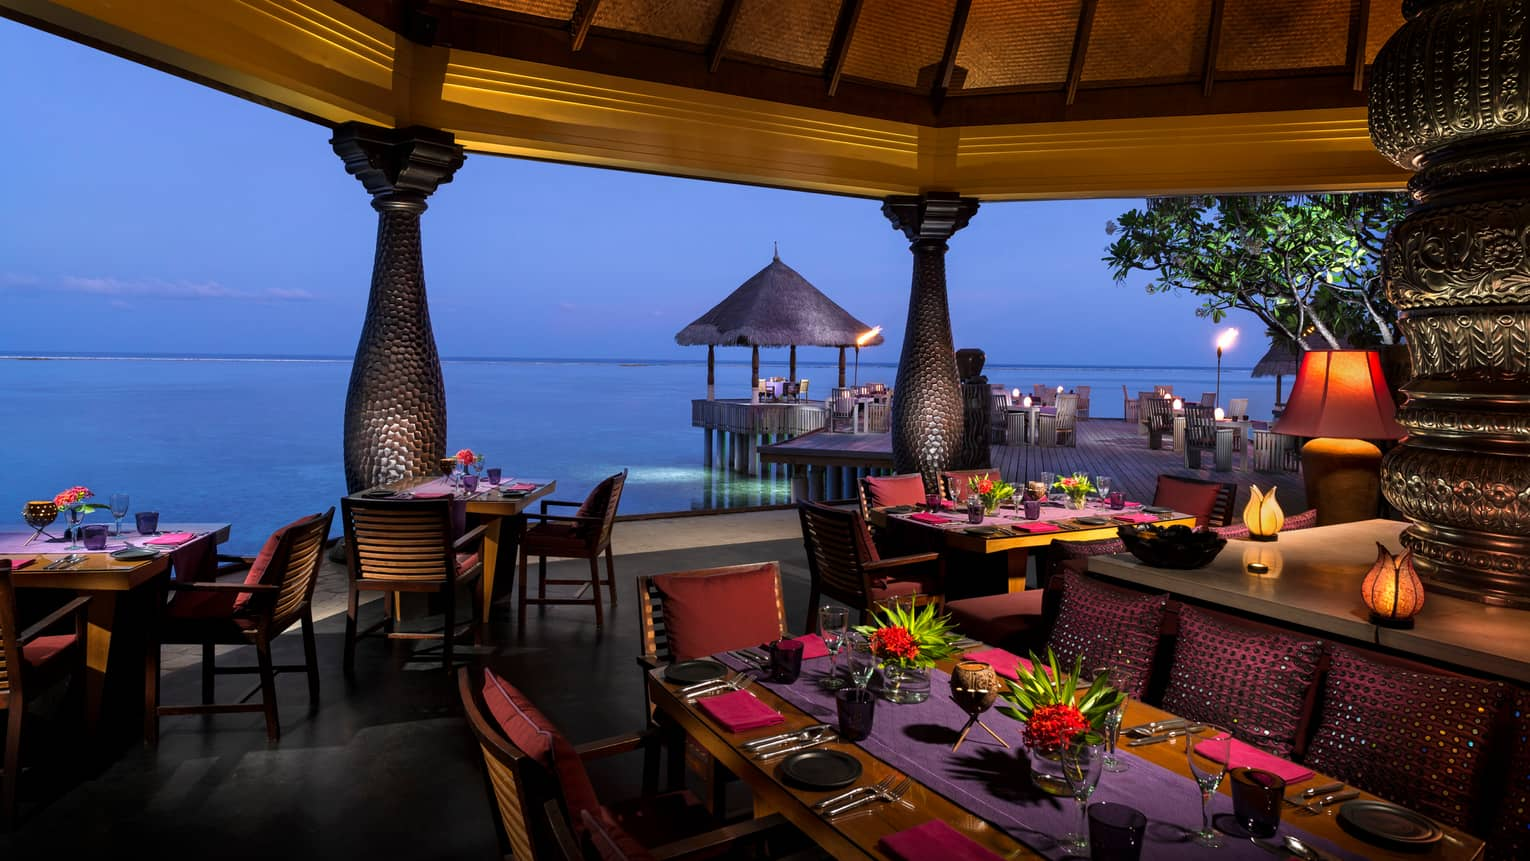 Evening view of Baraabaru restaurant dining patio on the water, with tropical flower arrangements, lanterns